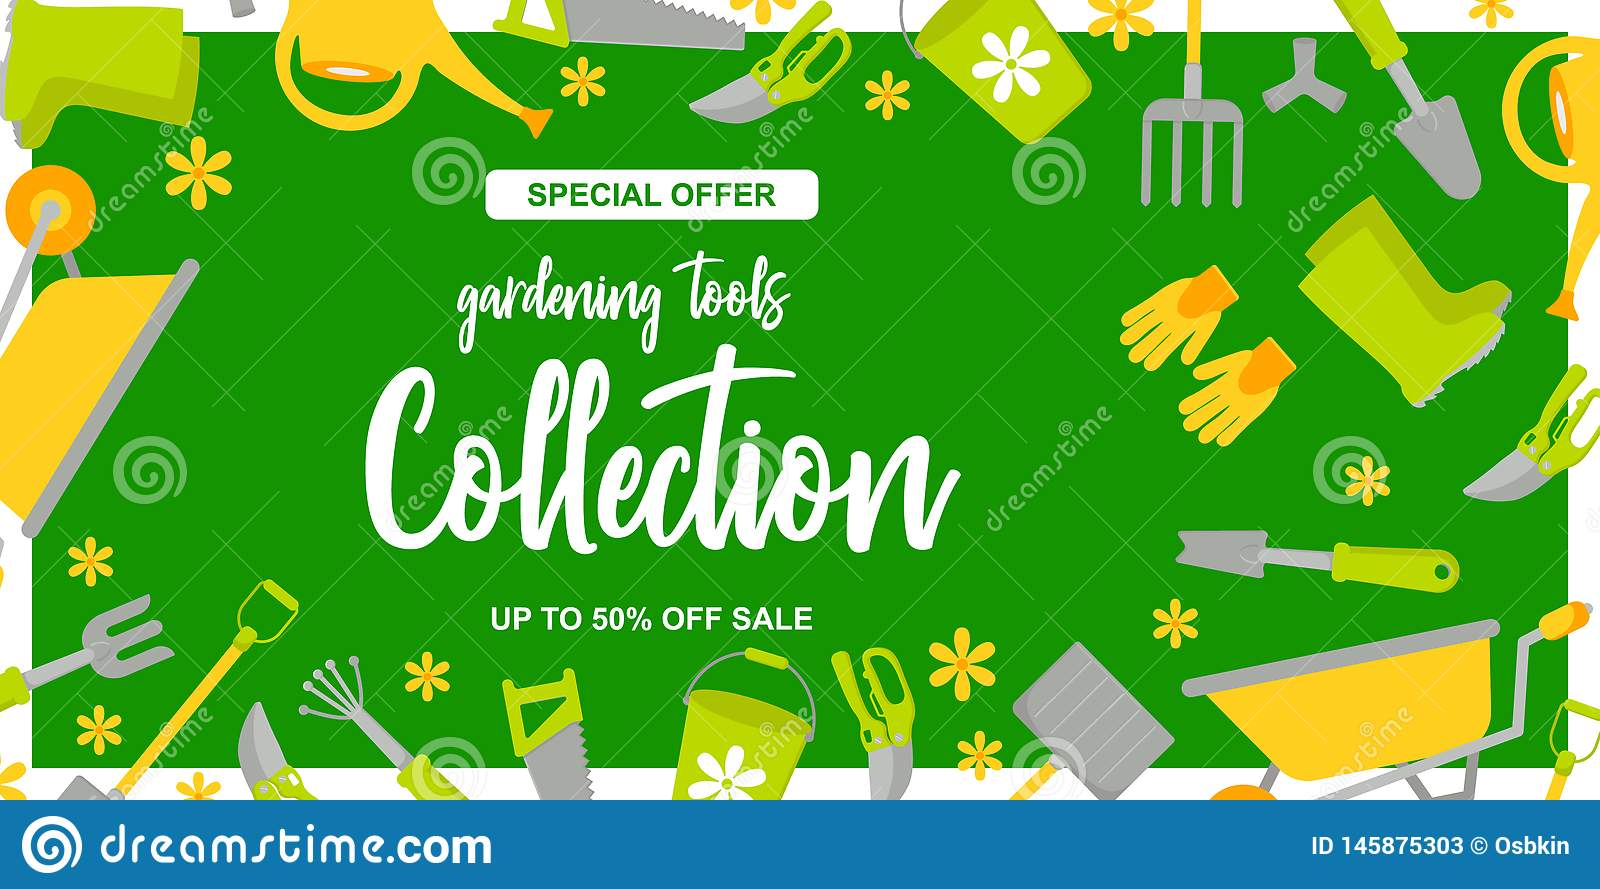 Garden Design poster with gardening tools on green background. Special offer. up to 50 off sale